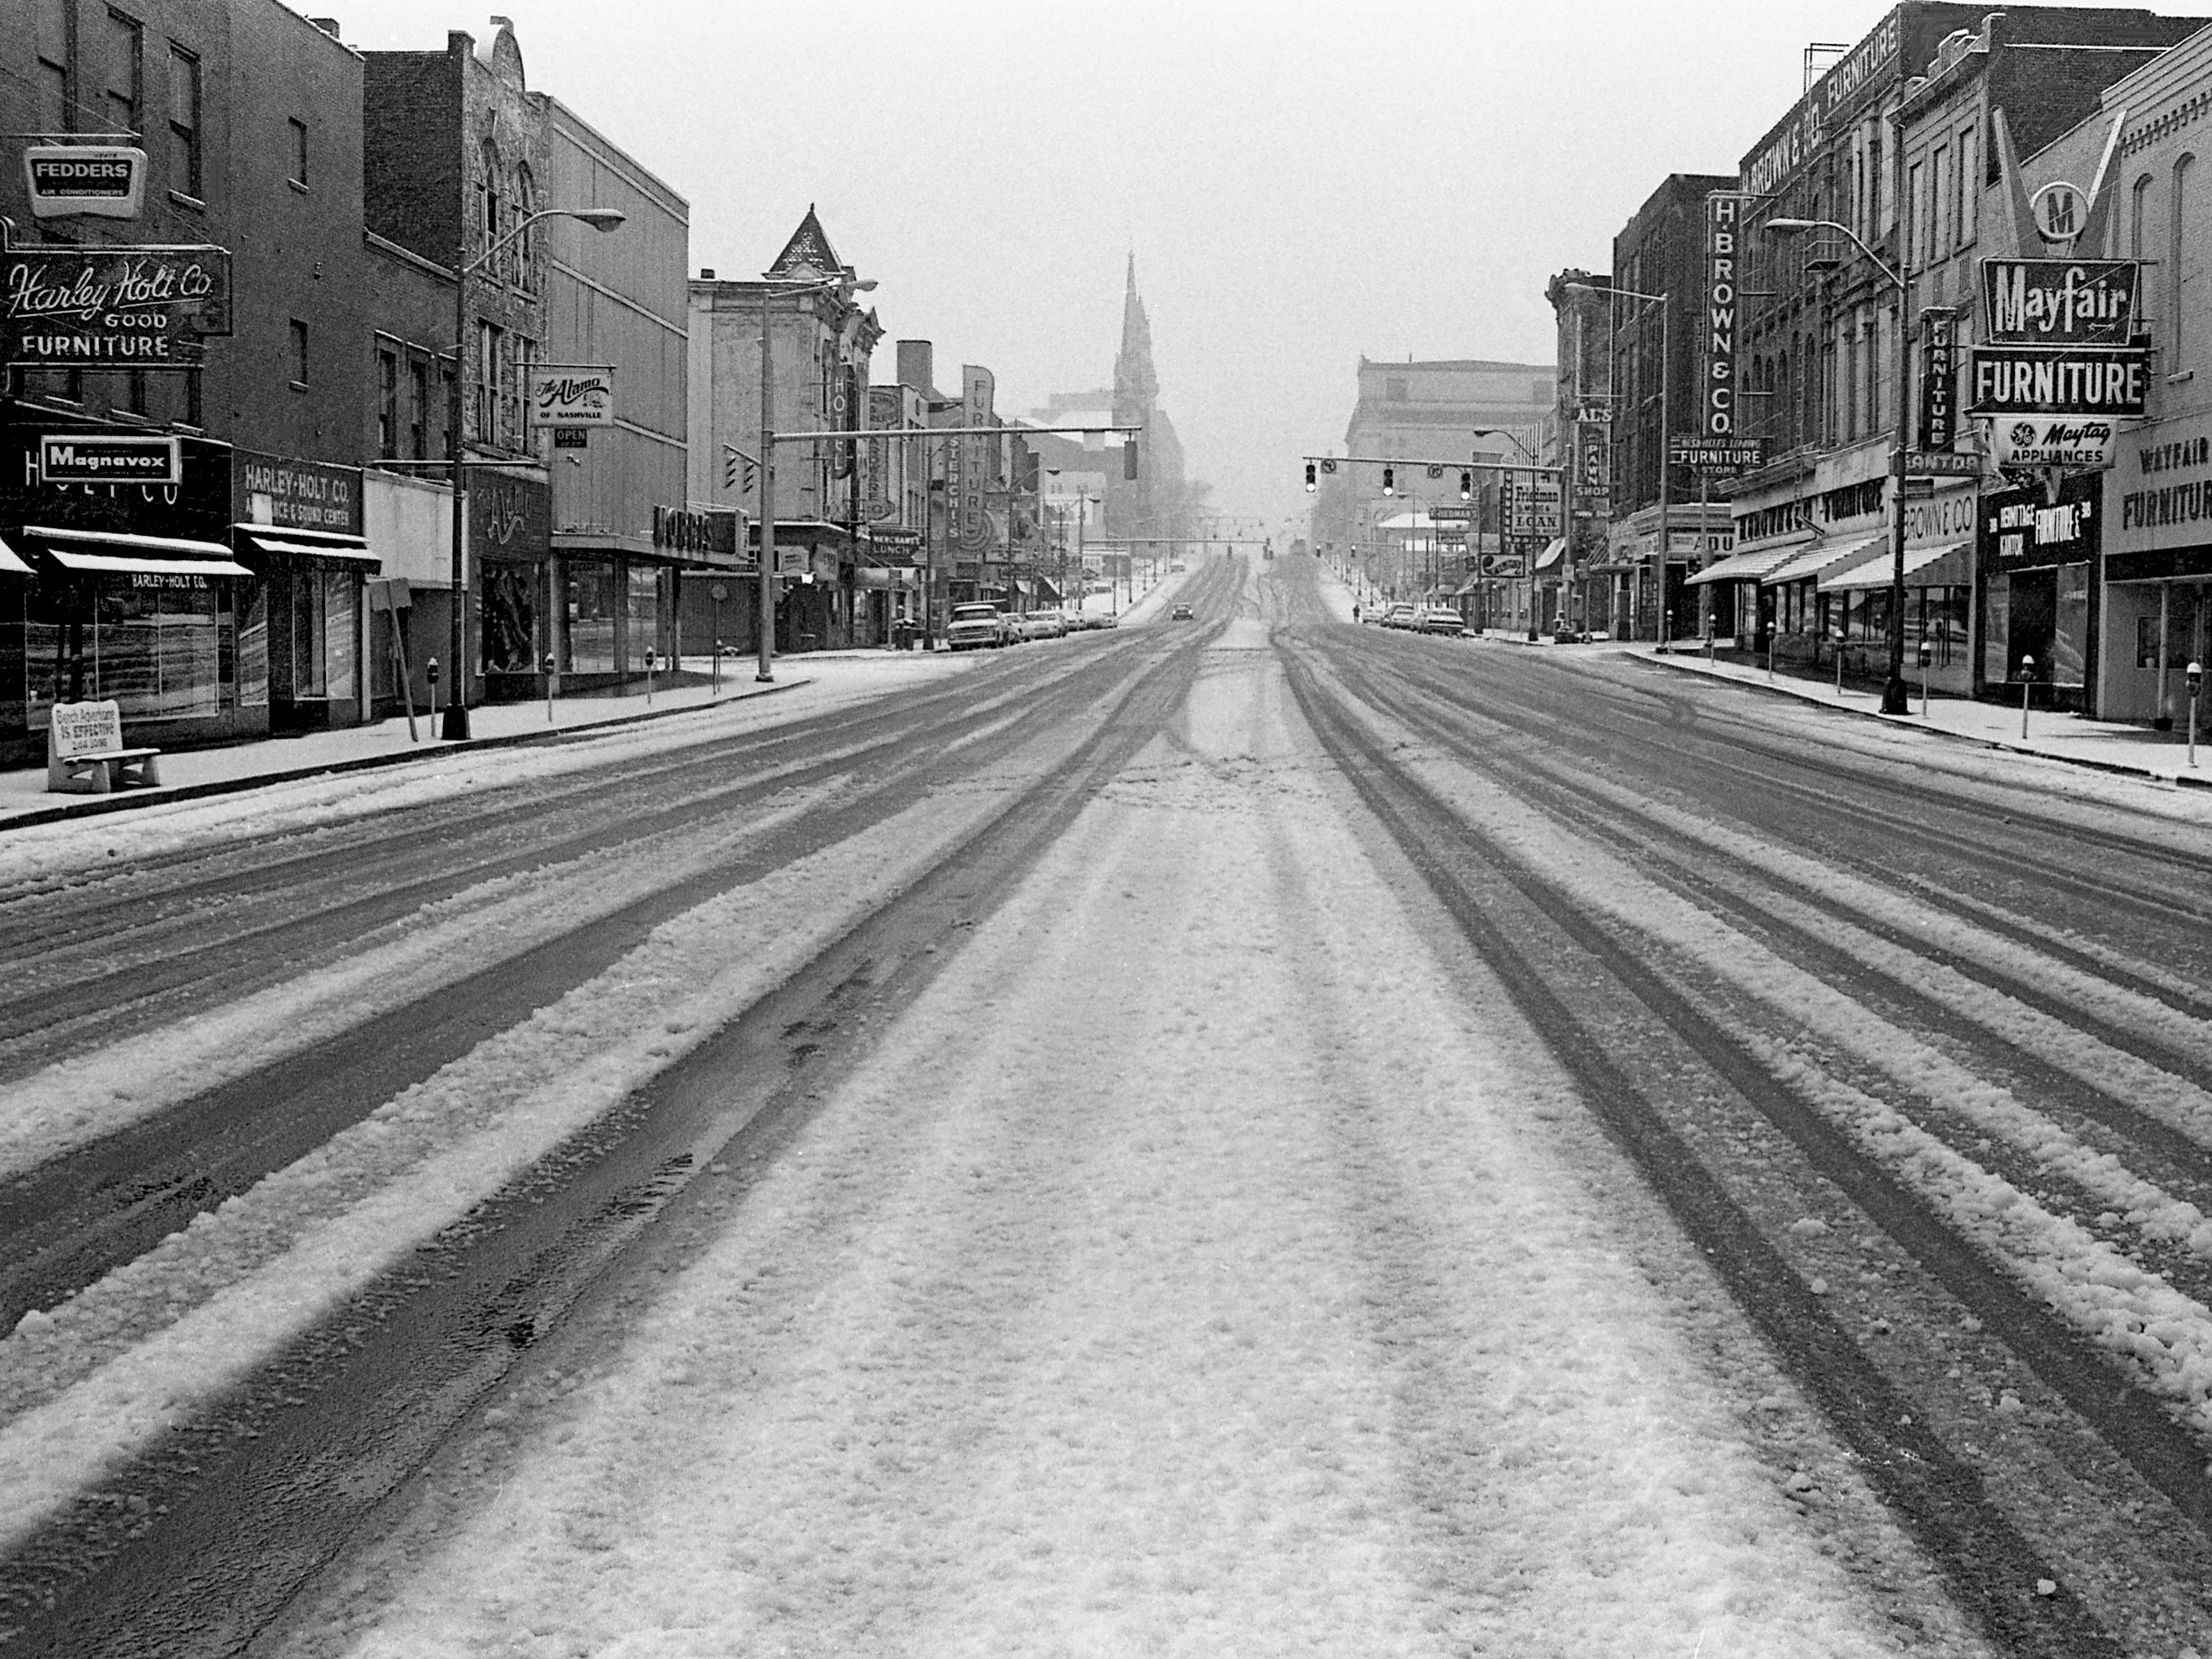 Most motorists seem to be avoiding driving on the snow-covered Lower Broadway Jan. 21, 1979.